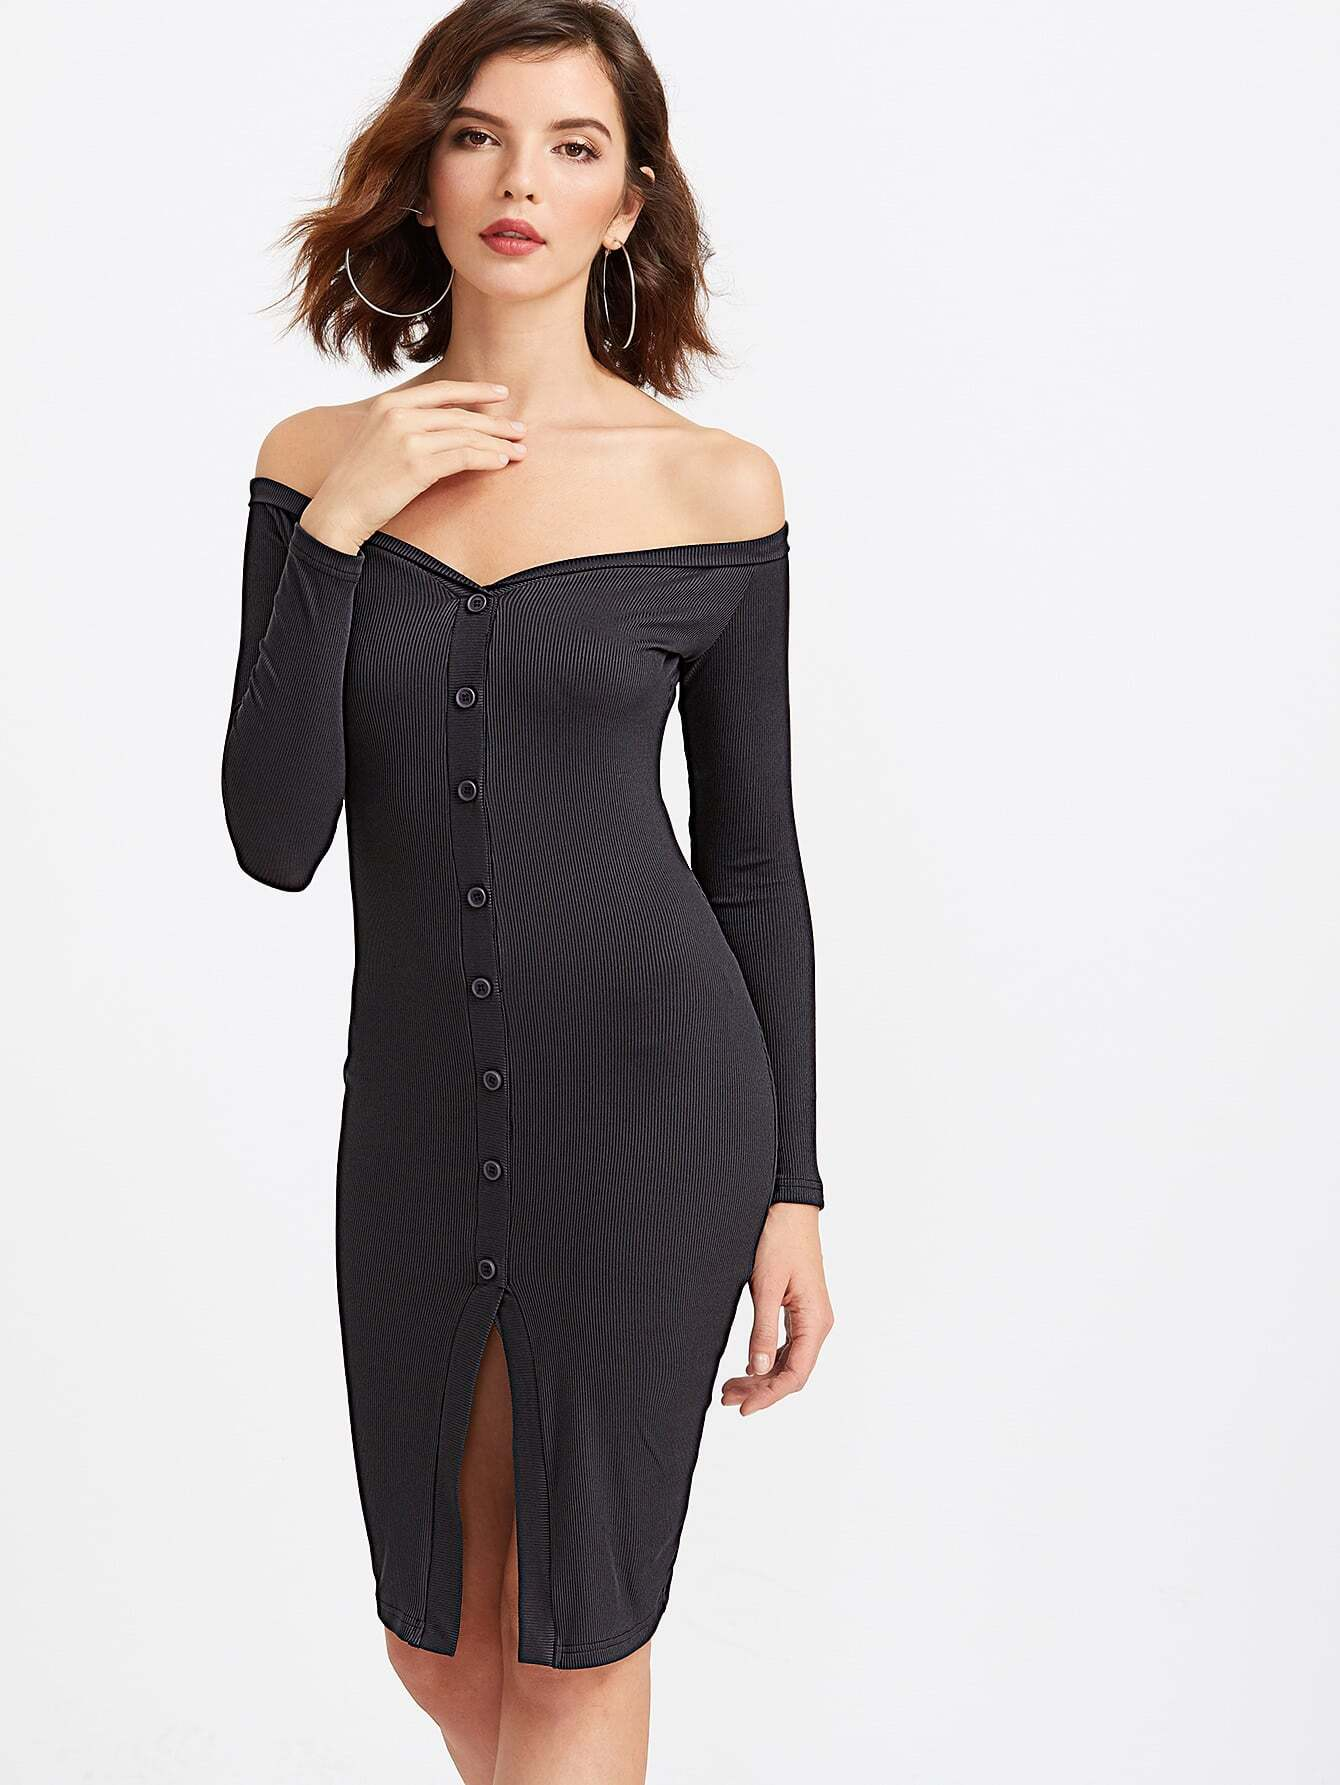 Black Off The Shoulder Button Front Ribbed Bodycon Dress dress170227702